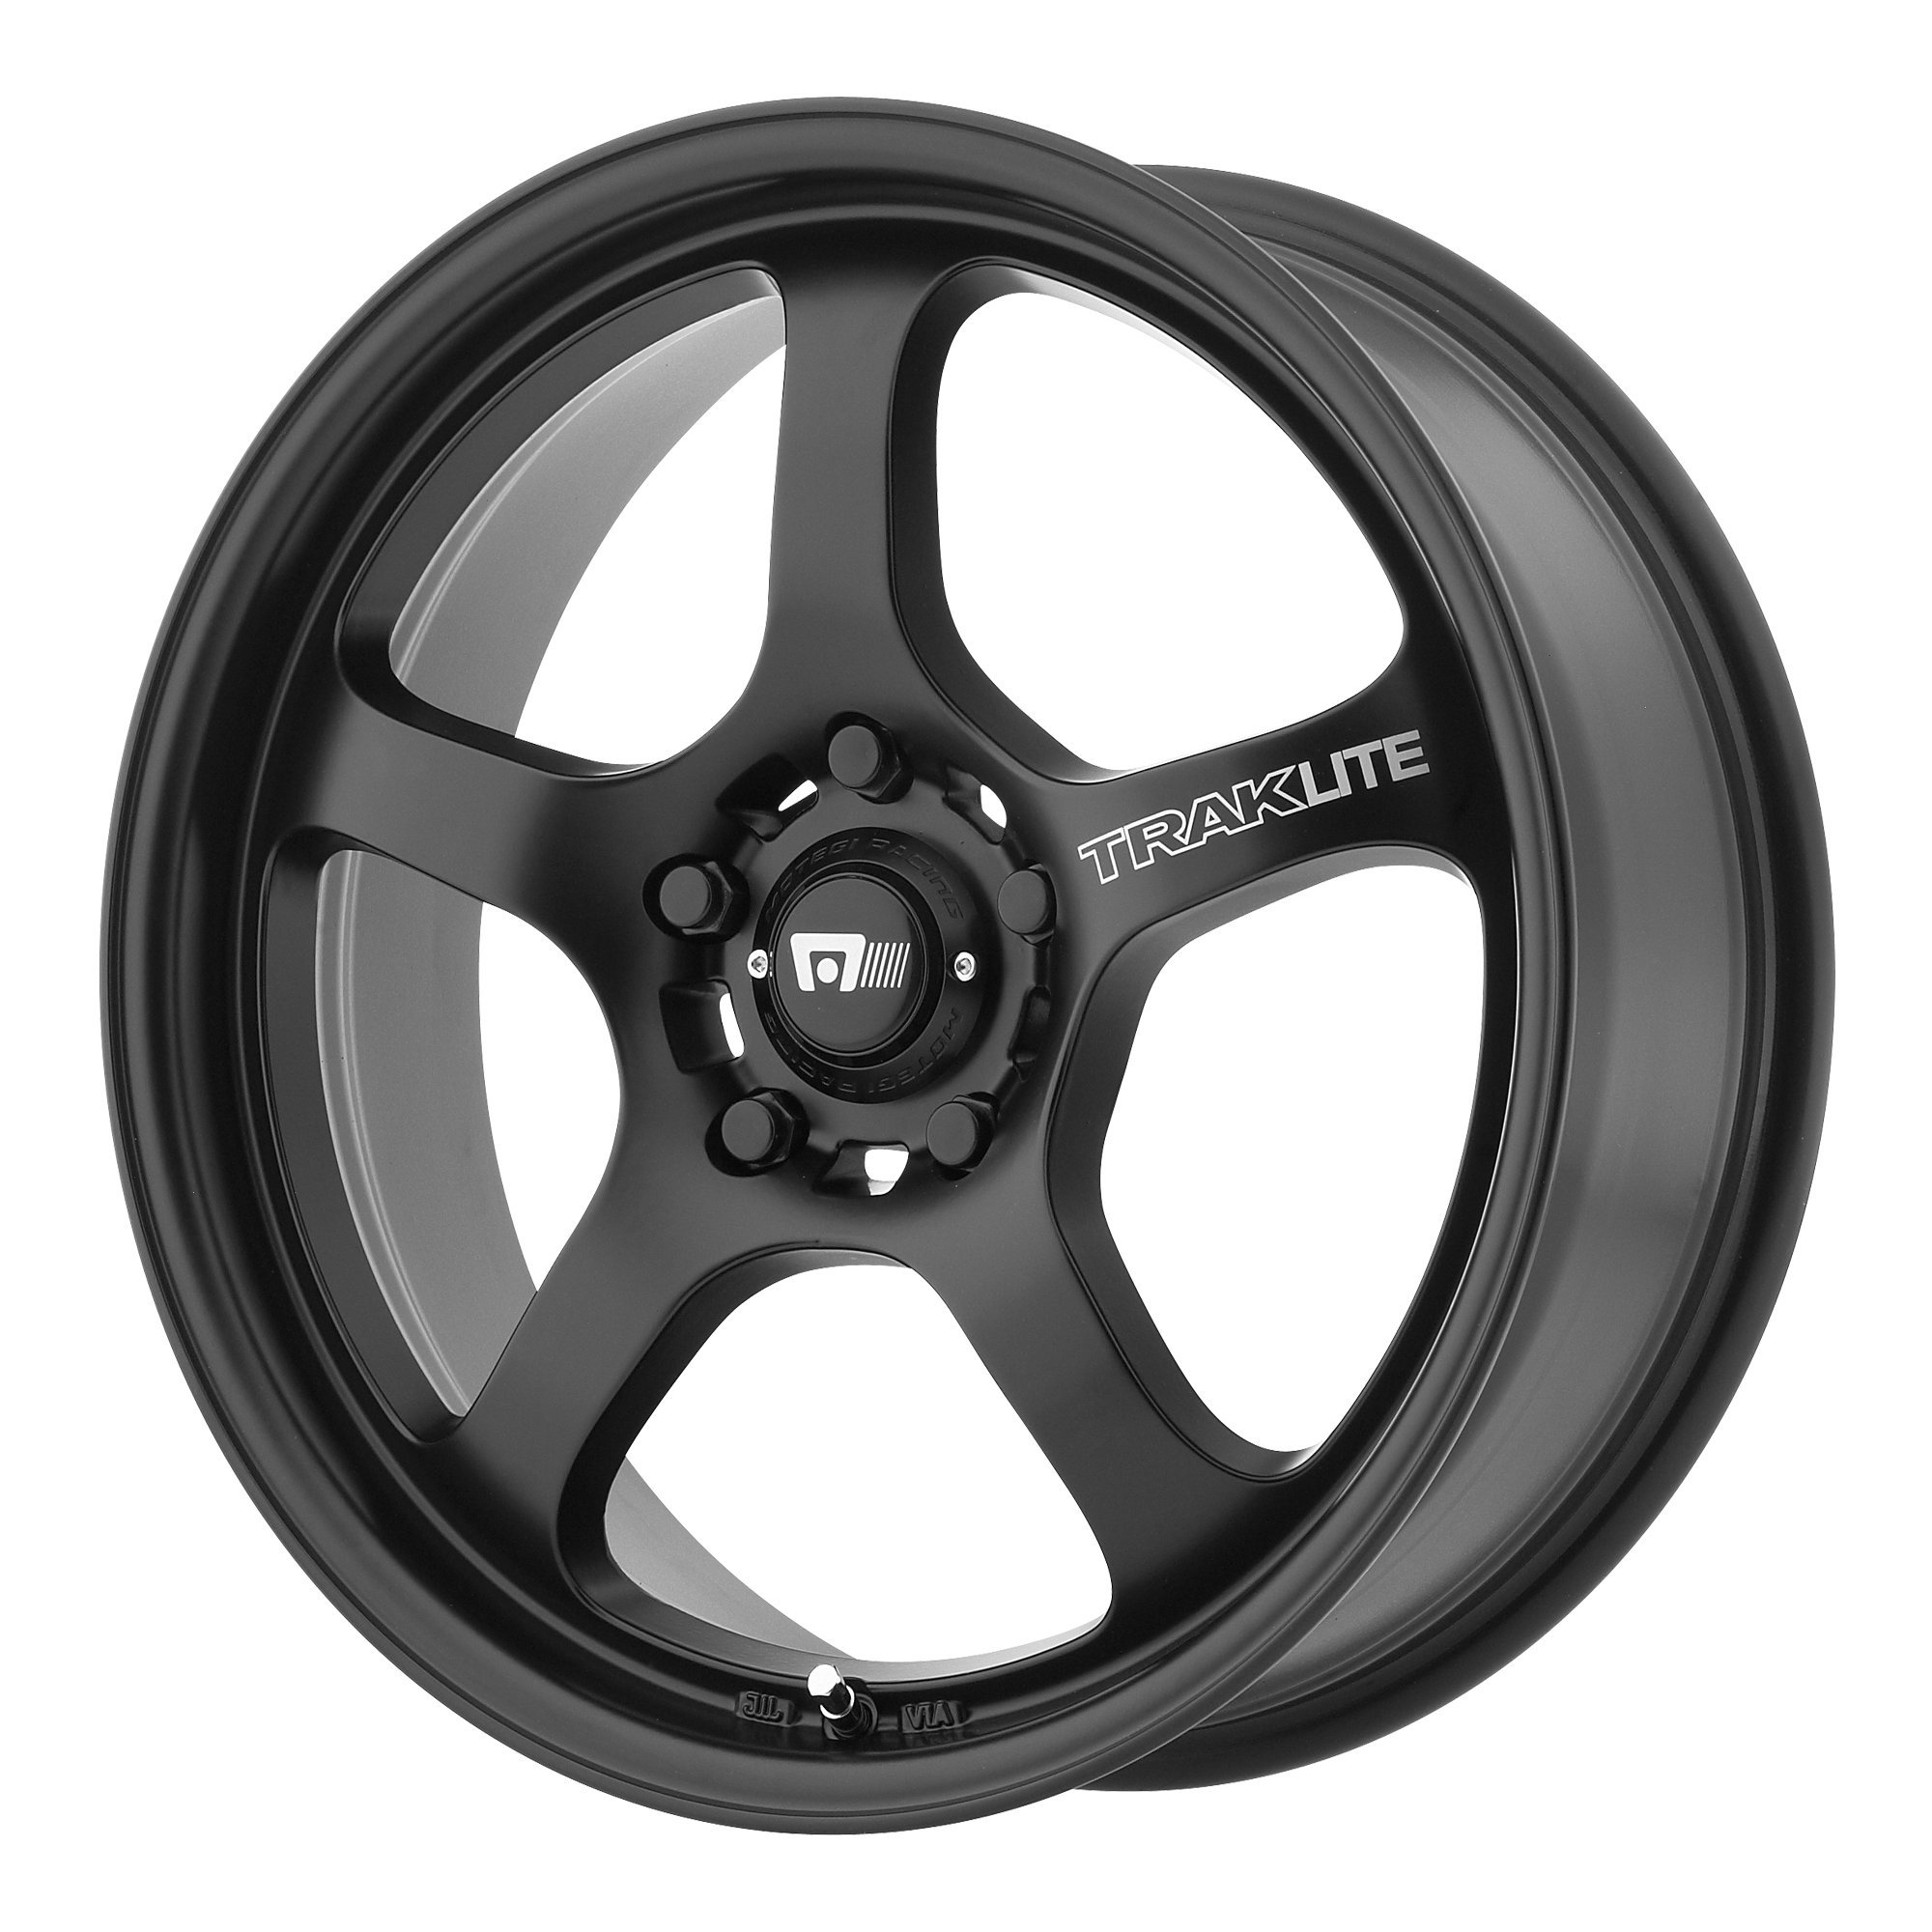 Motegi Racing MR131 Traklite Satin Black Wheel (17x8''/5x114.3mm, +40mm offset) by Motegi Racing (Image #1)